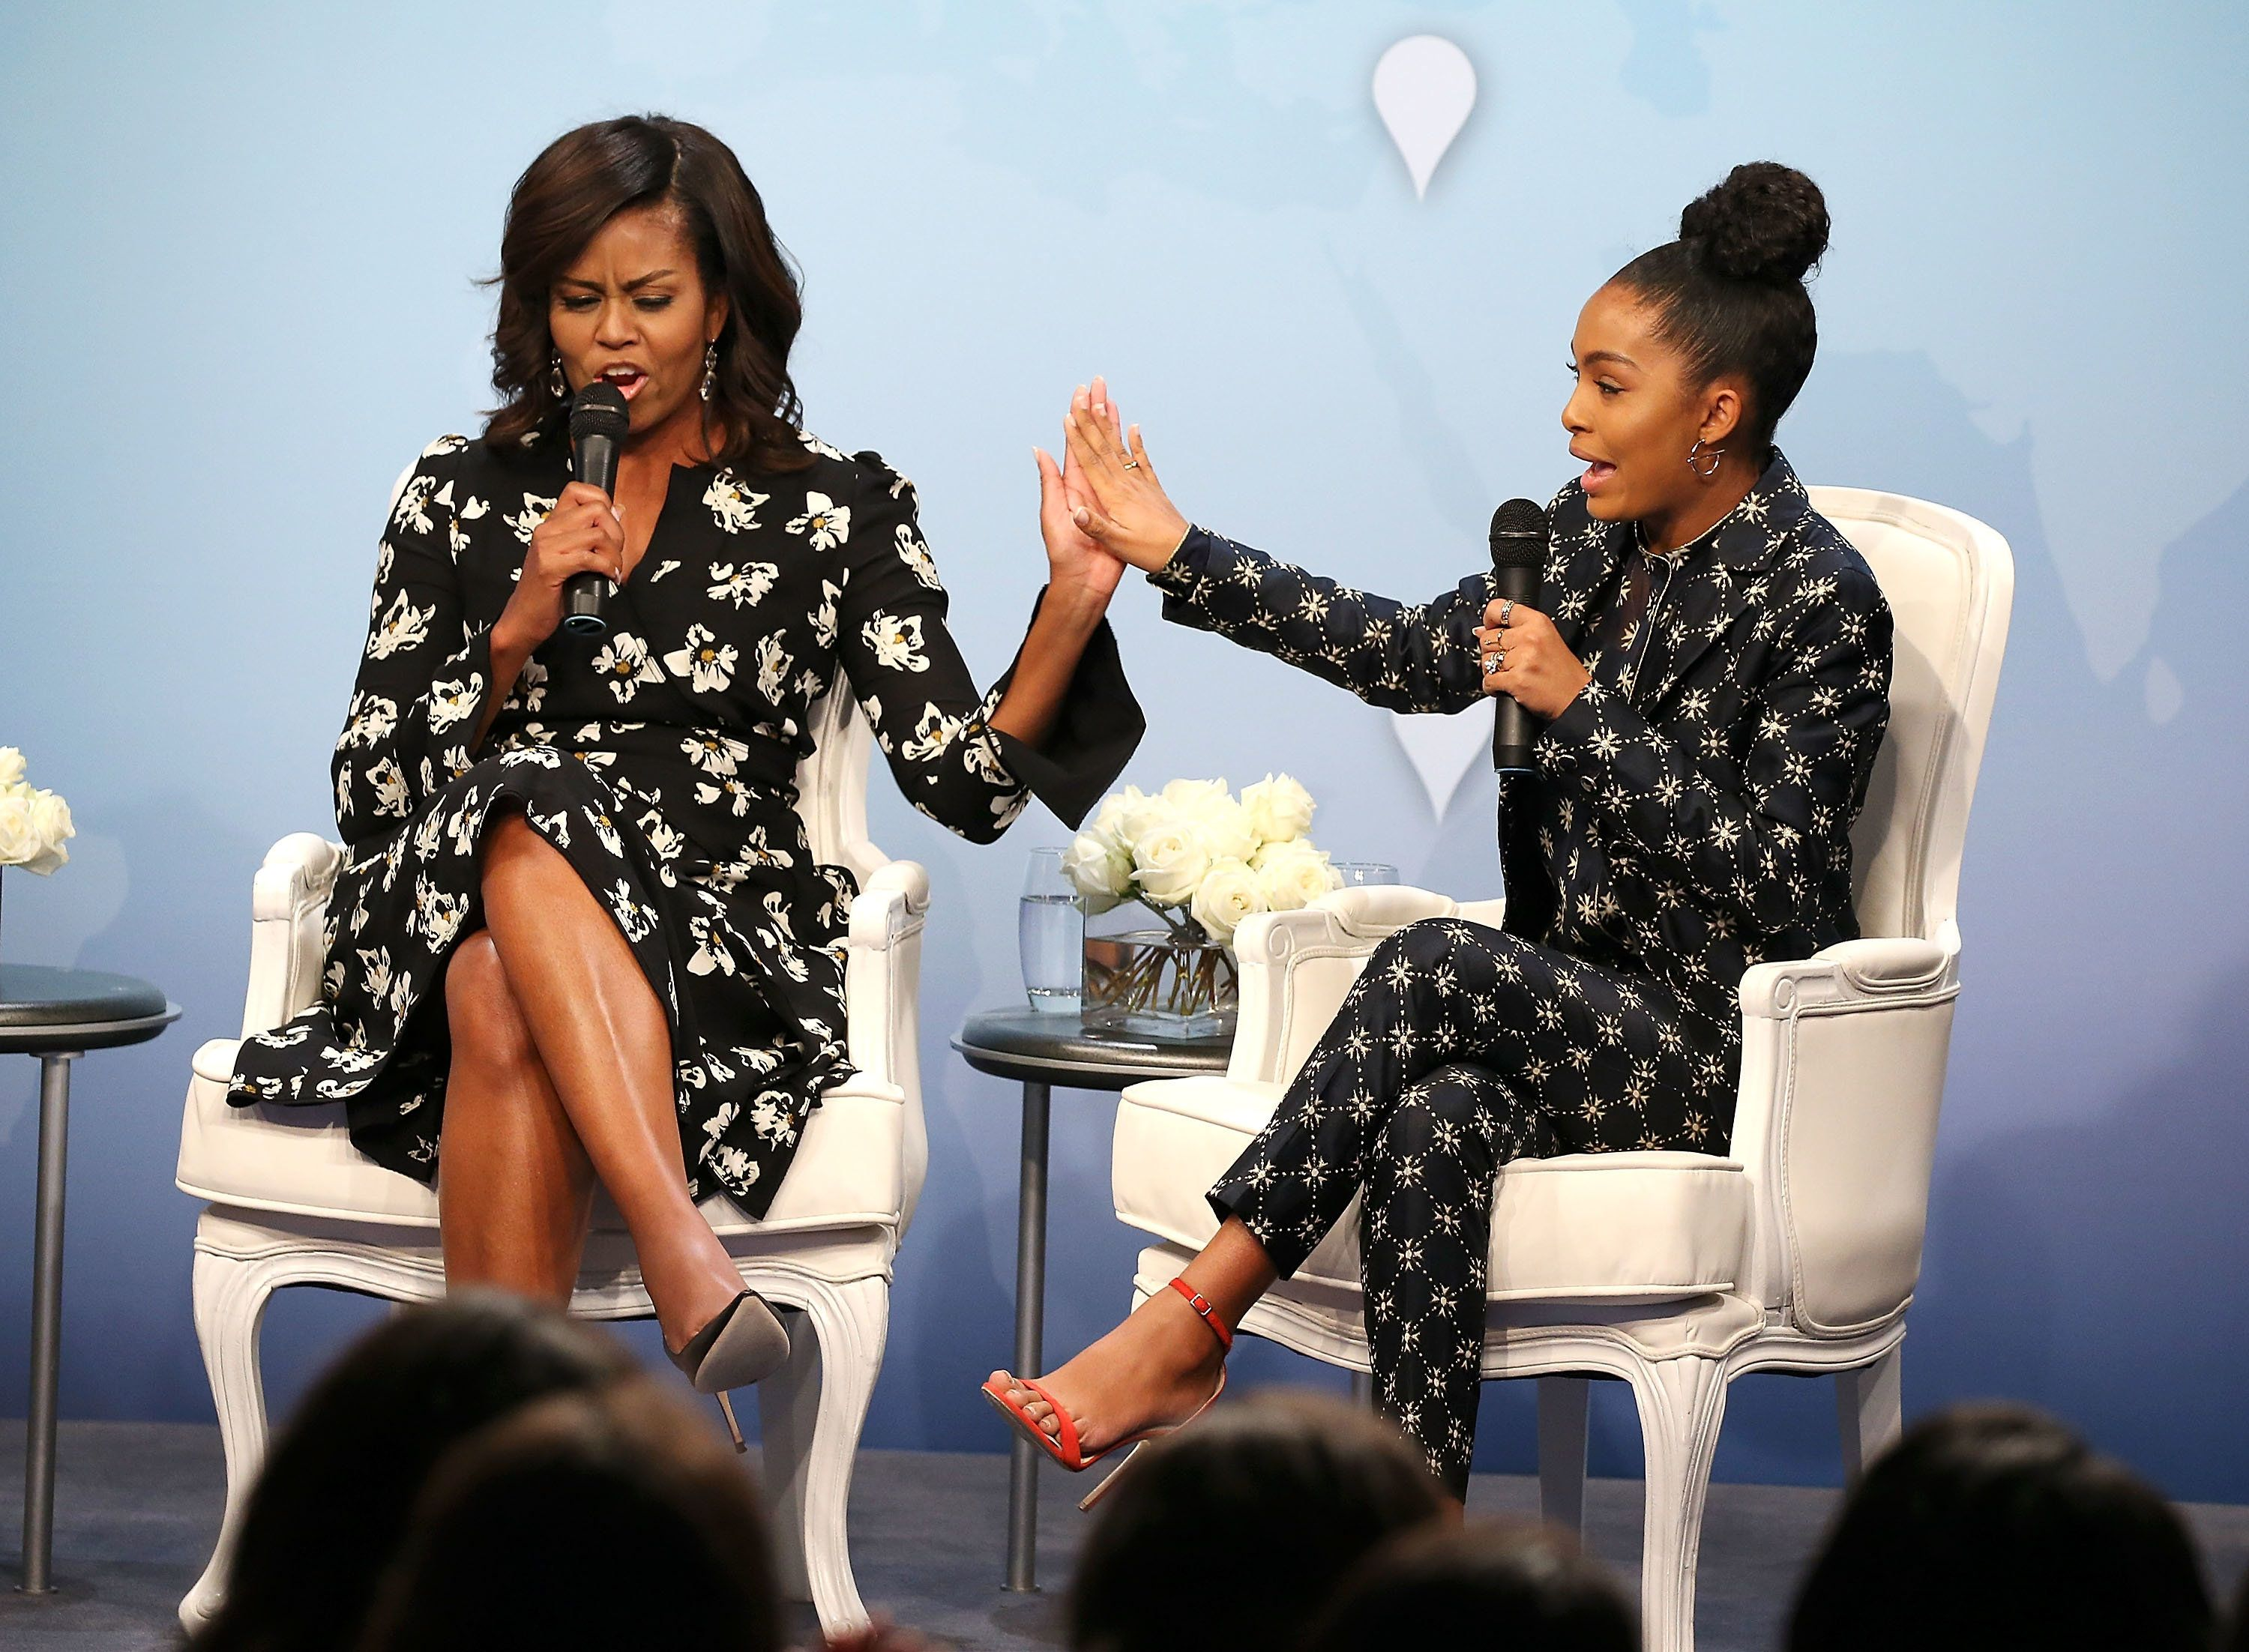 WASHINGTON, DC - OCTOBER 11:  First Lady of the United States Michelle Obama (L) greets actress and activist Yara Shahidi with a 'high five' during a panel discussion at Glamour Hosts 'A Brighter Future: A Global Conversation on Girls' Education' with First Lady Michelle Obama at The Newseum on October 11, 2016 in Washington, DC.  (Photo by Paul Morigi/Getty Images for Glamour)